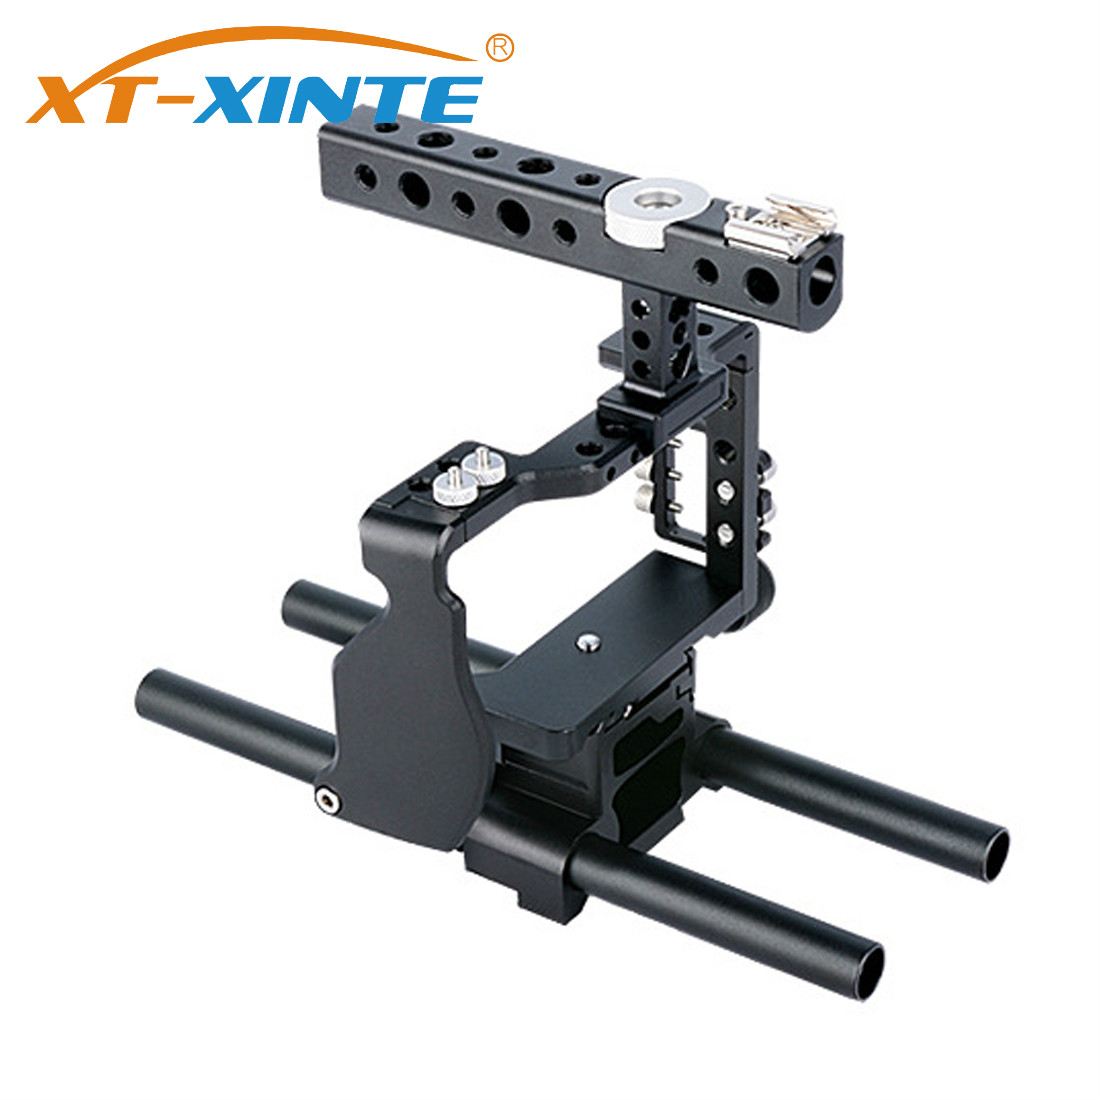 XT-XINTE Professional Camera Cage Compatible for Sony A6000 Mirrorless System Camera Metal Protective Case with Handle Grip Kit